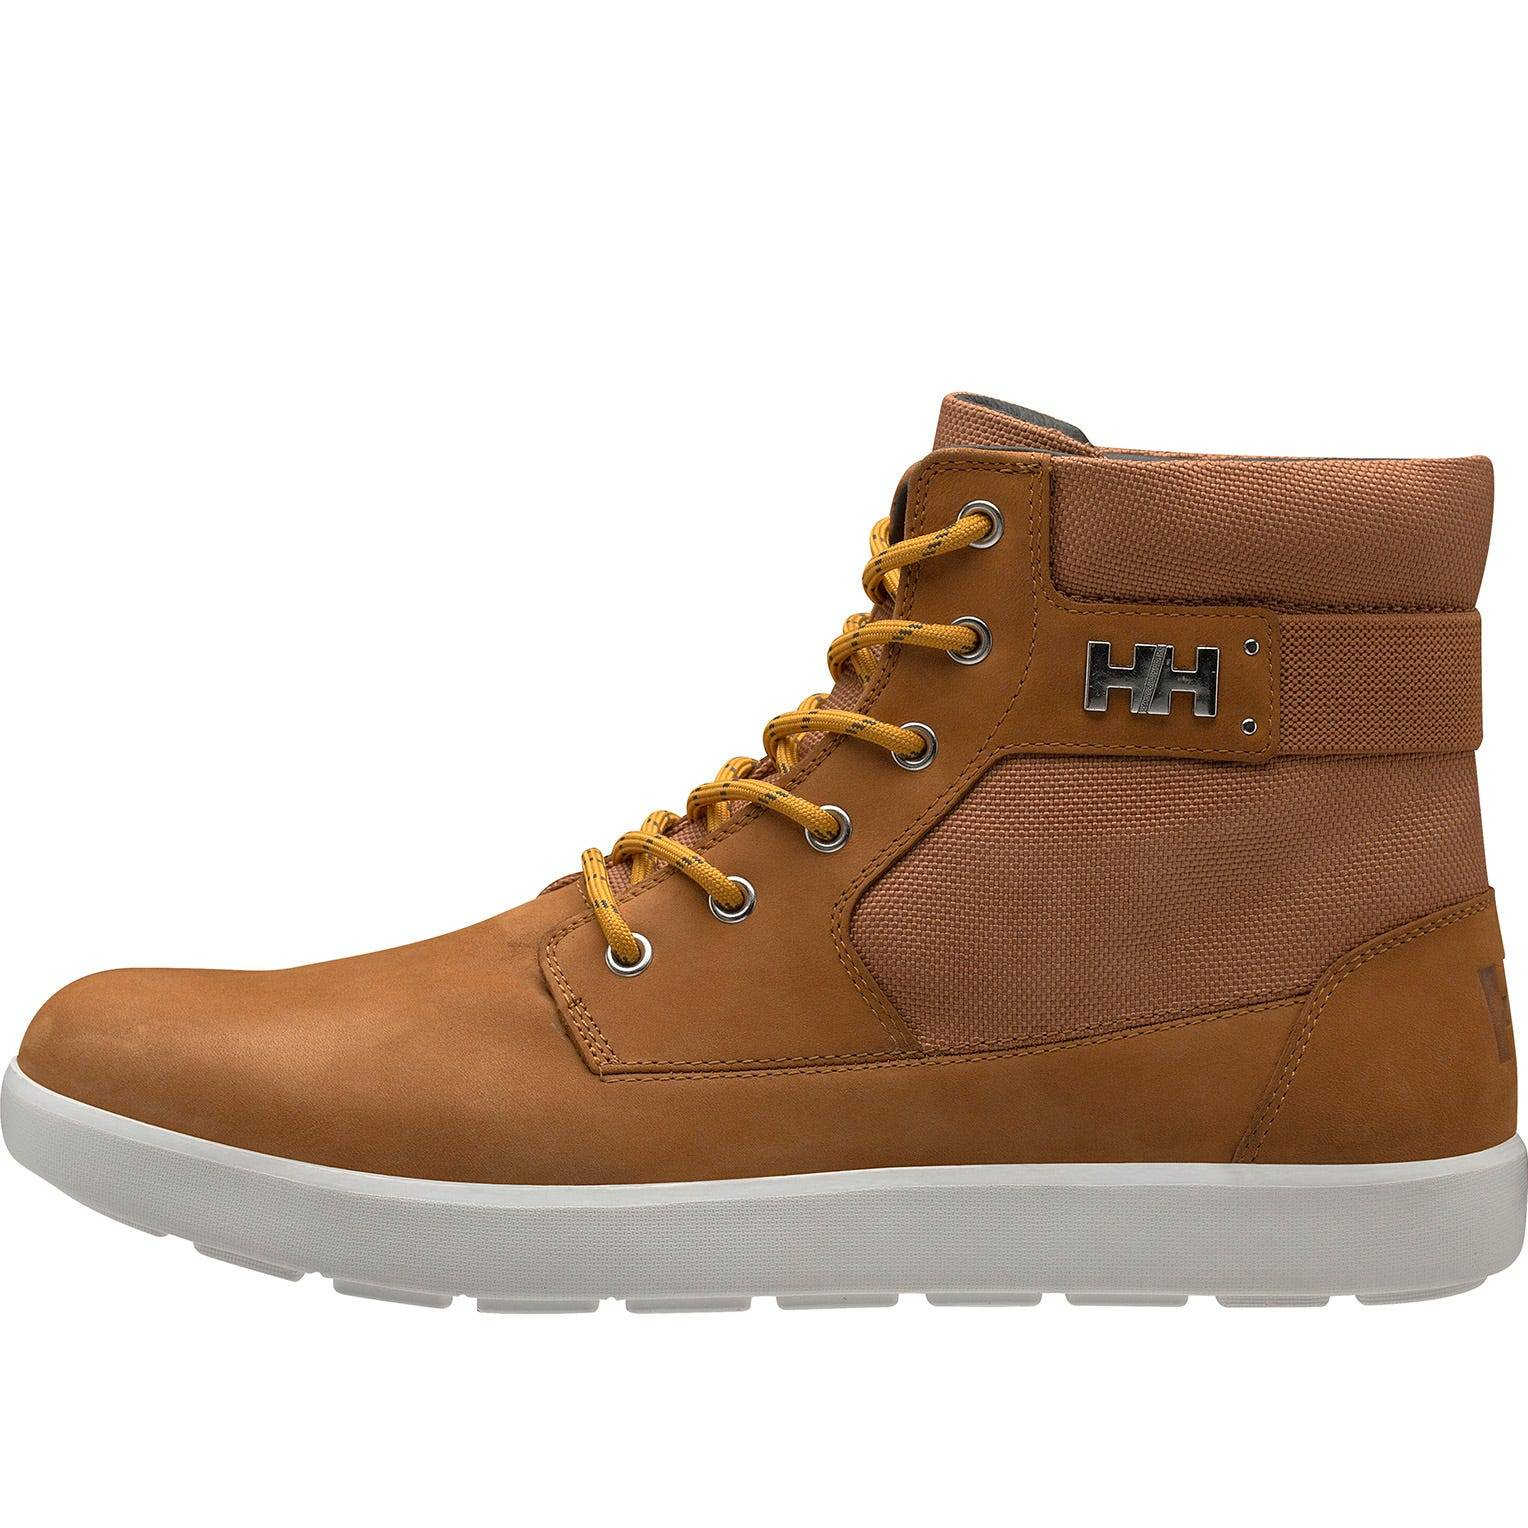 Helly Hansen Stockholm 2 Mens Casual Shoe Brown 11.5